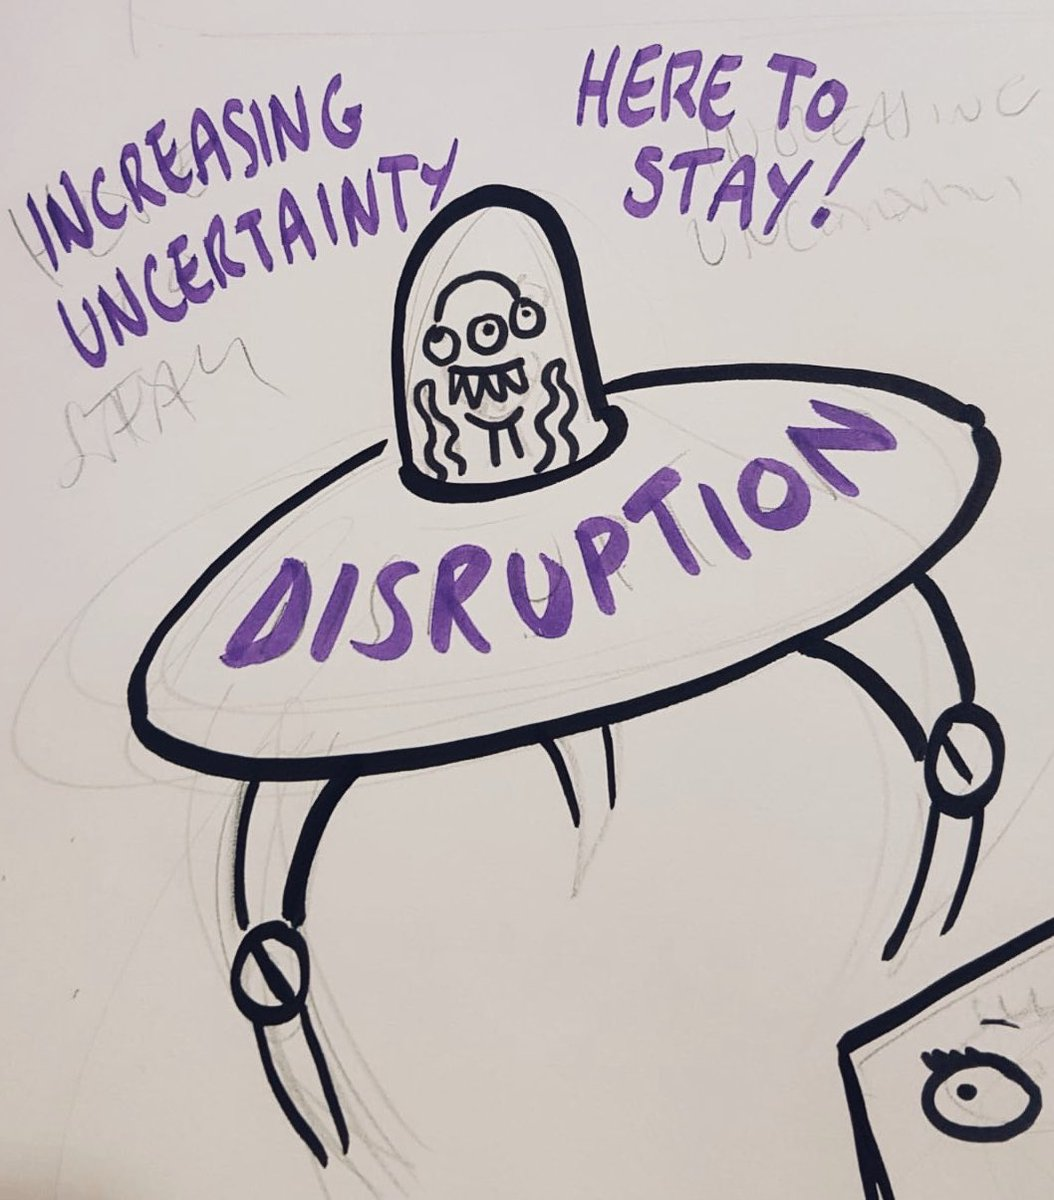 Is disruption the new change? Check out the emerging graphic in the West Hall. @CIPD @FestivalofWork #FestivalofWork #realtimegraphics #graphicrecording #graphicfacilitation